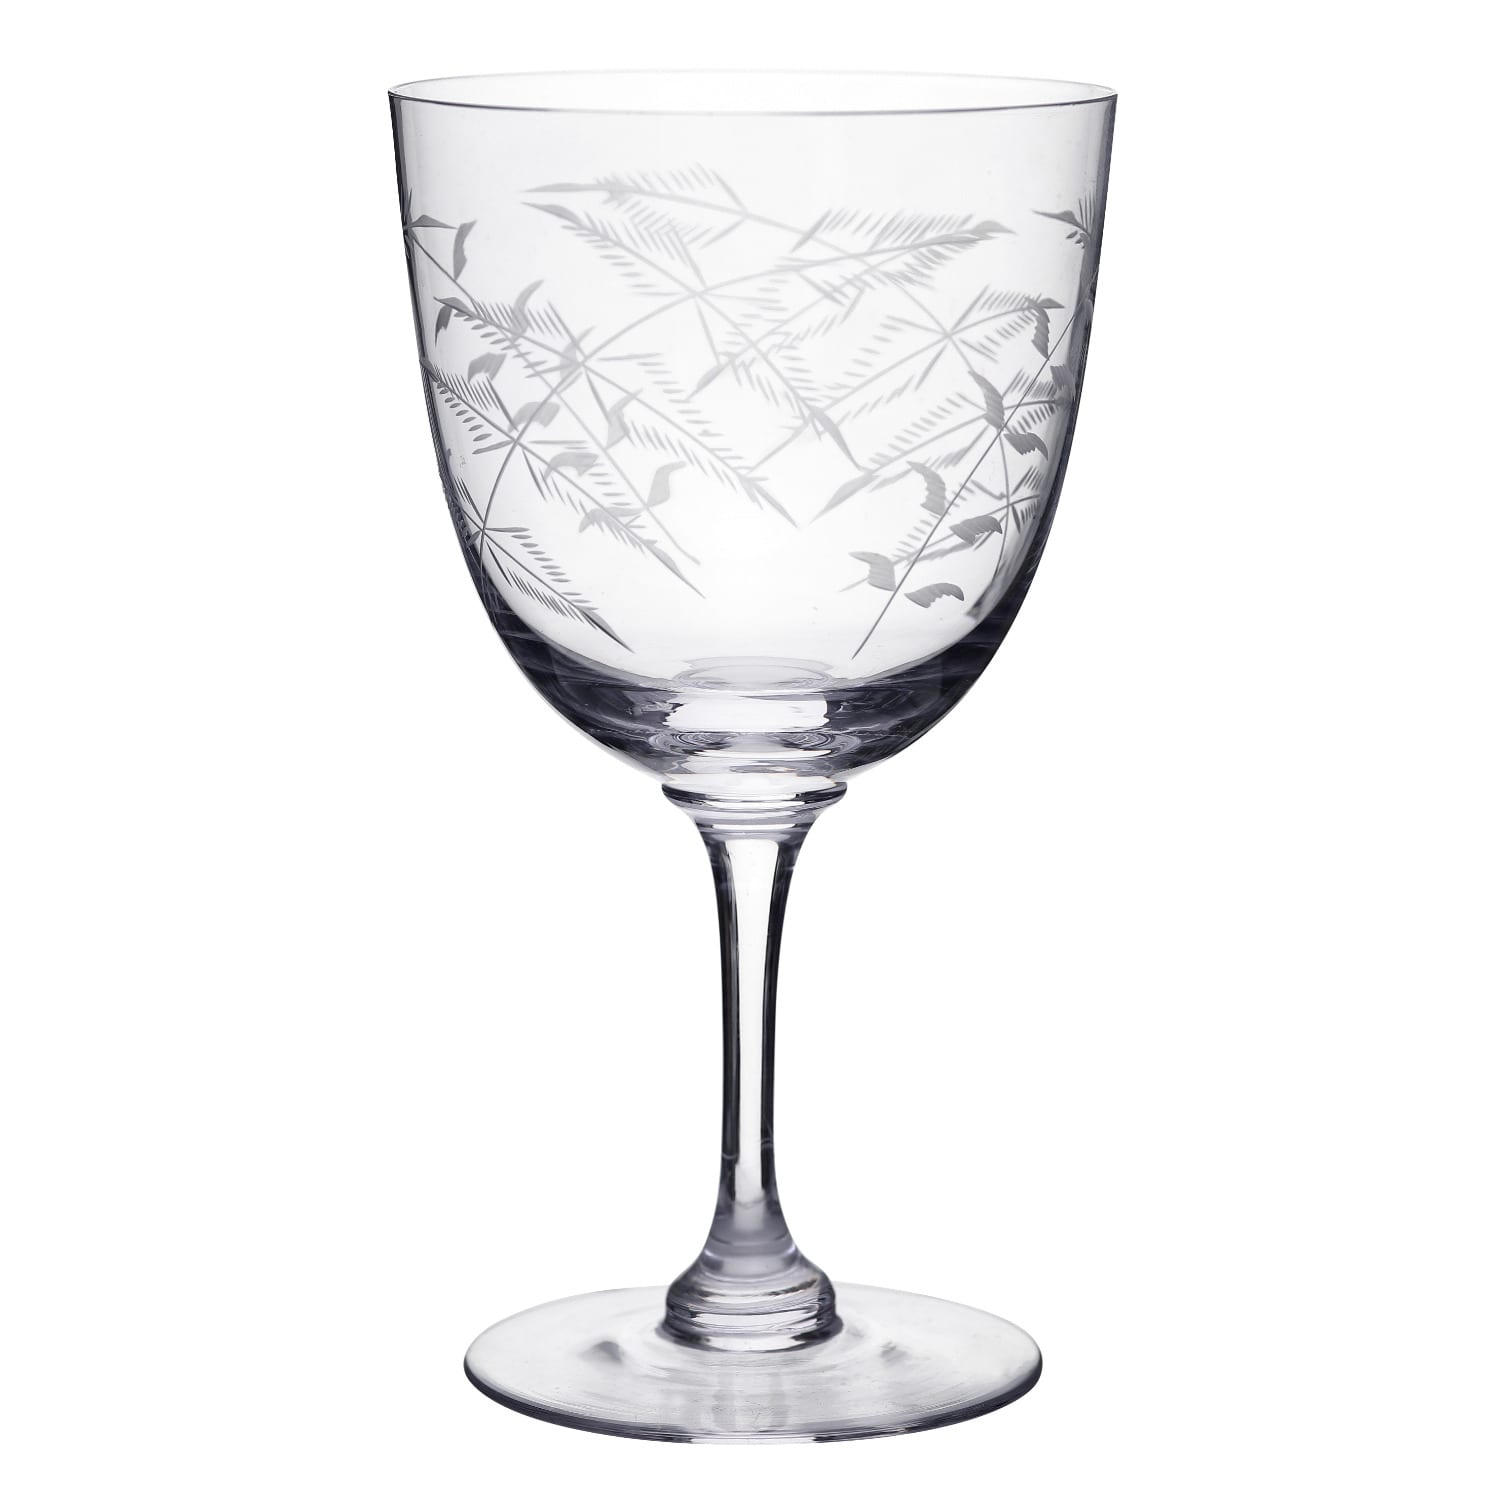 The Vintage List - Six Hand-Engraved Crystal Wine Glasses with Ferns Design